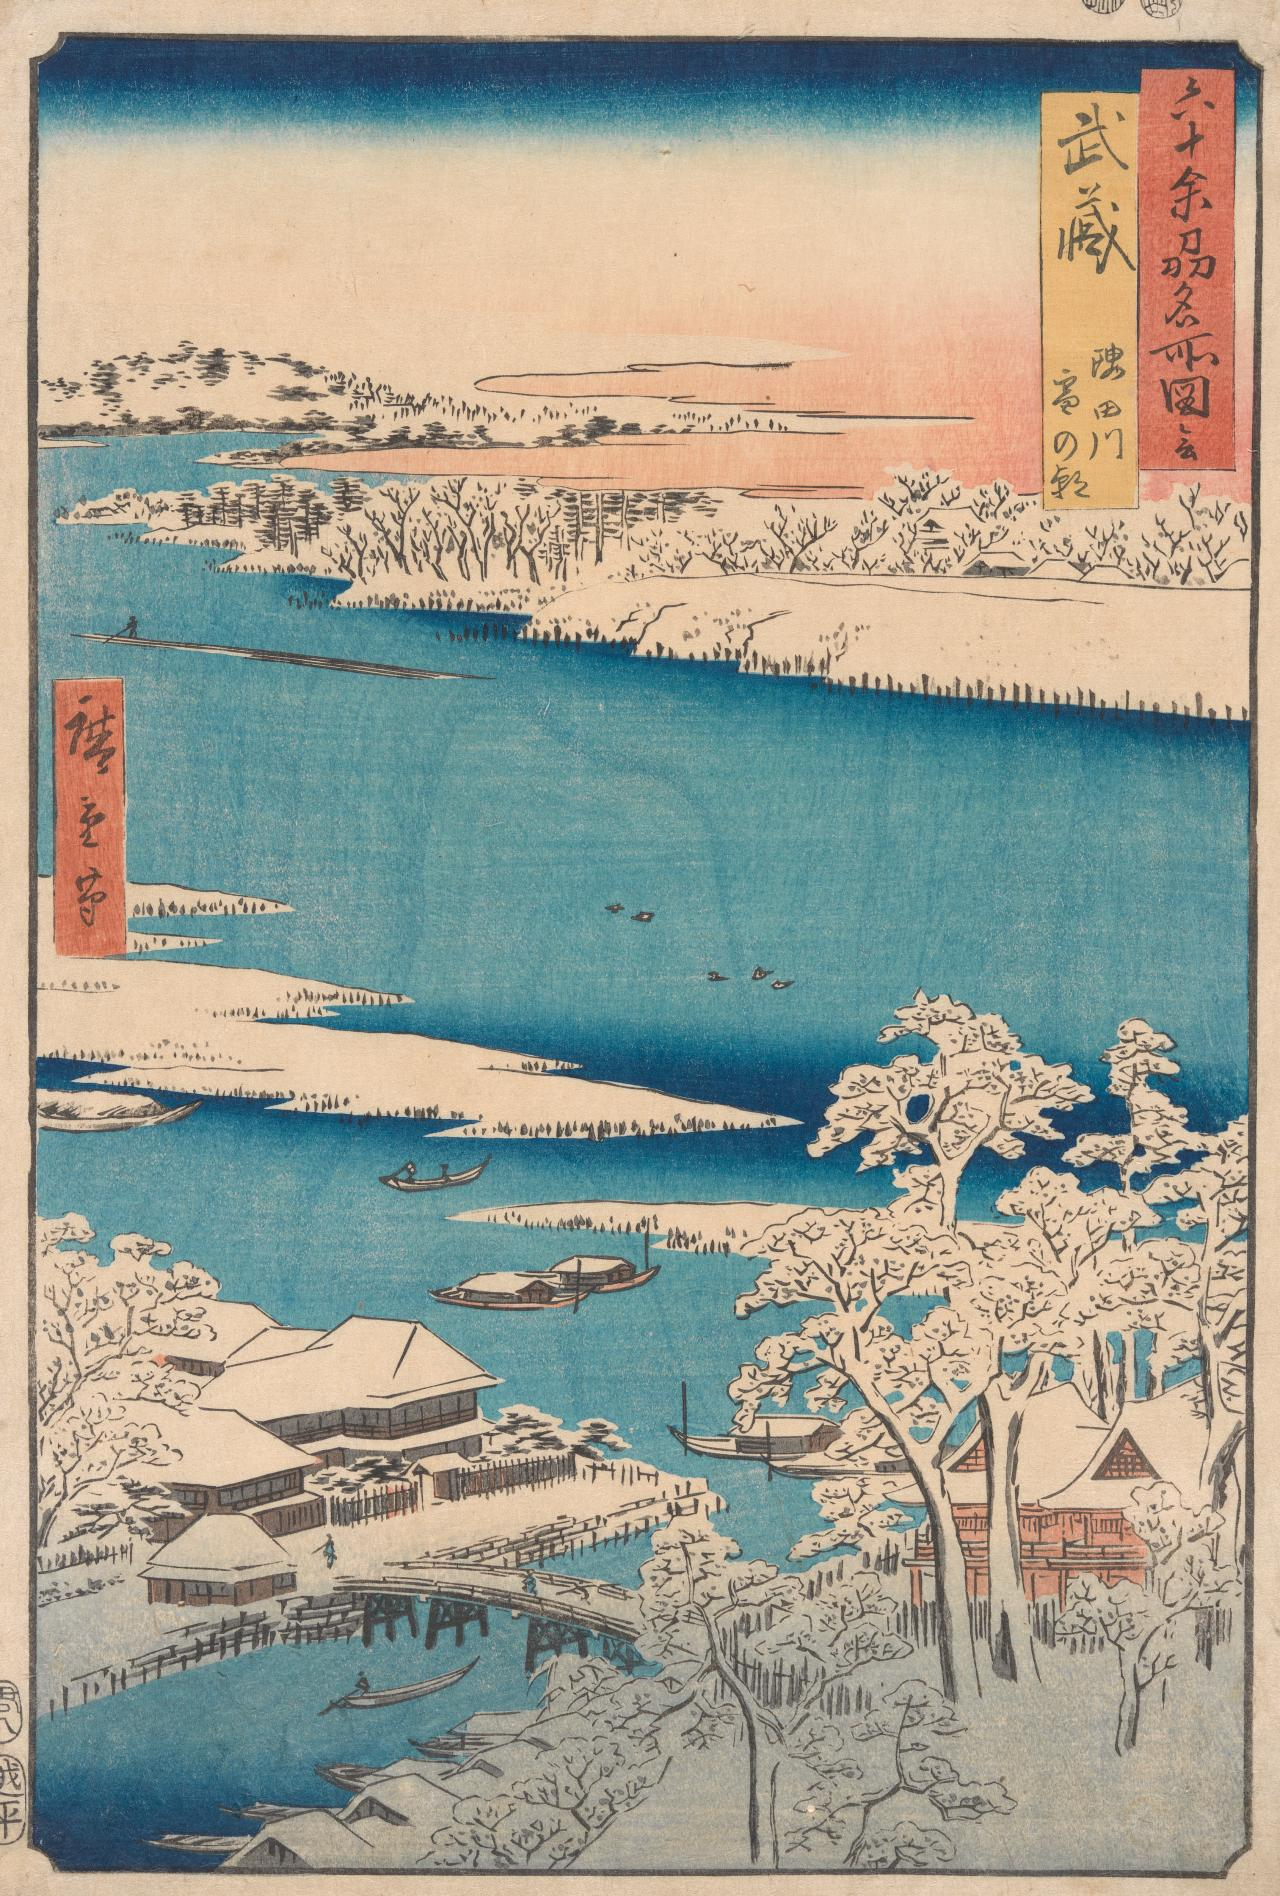 Snowy Morning on the Sumida River, Musashi Province